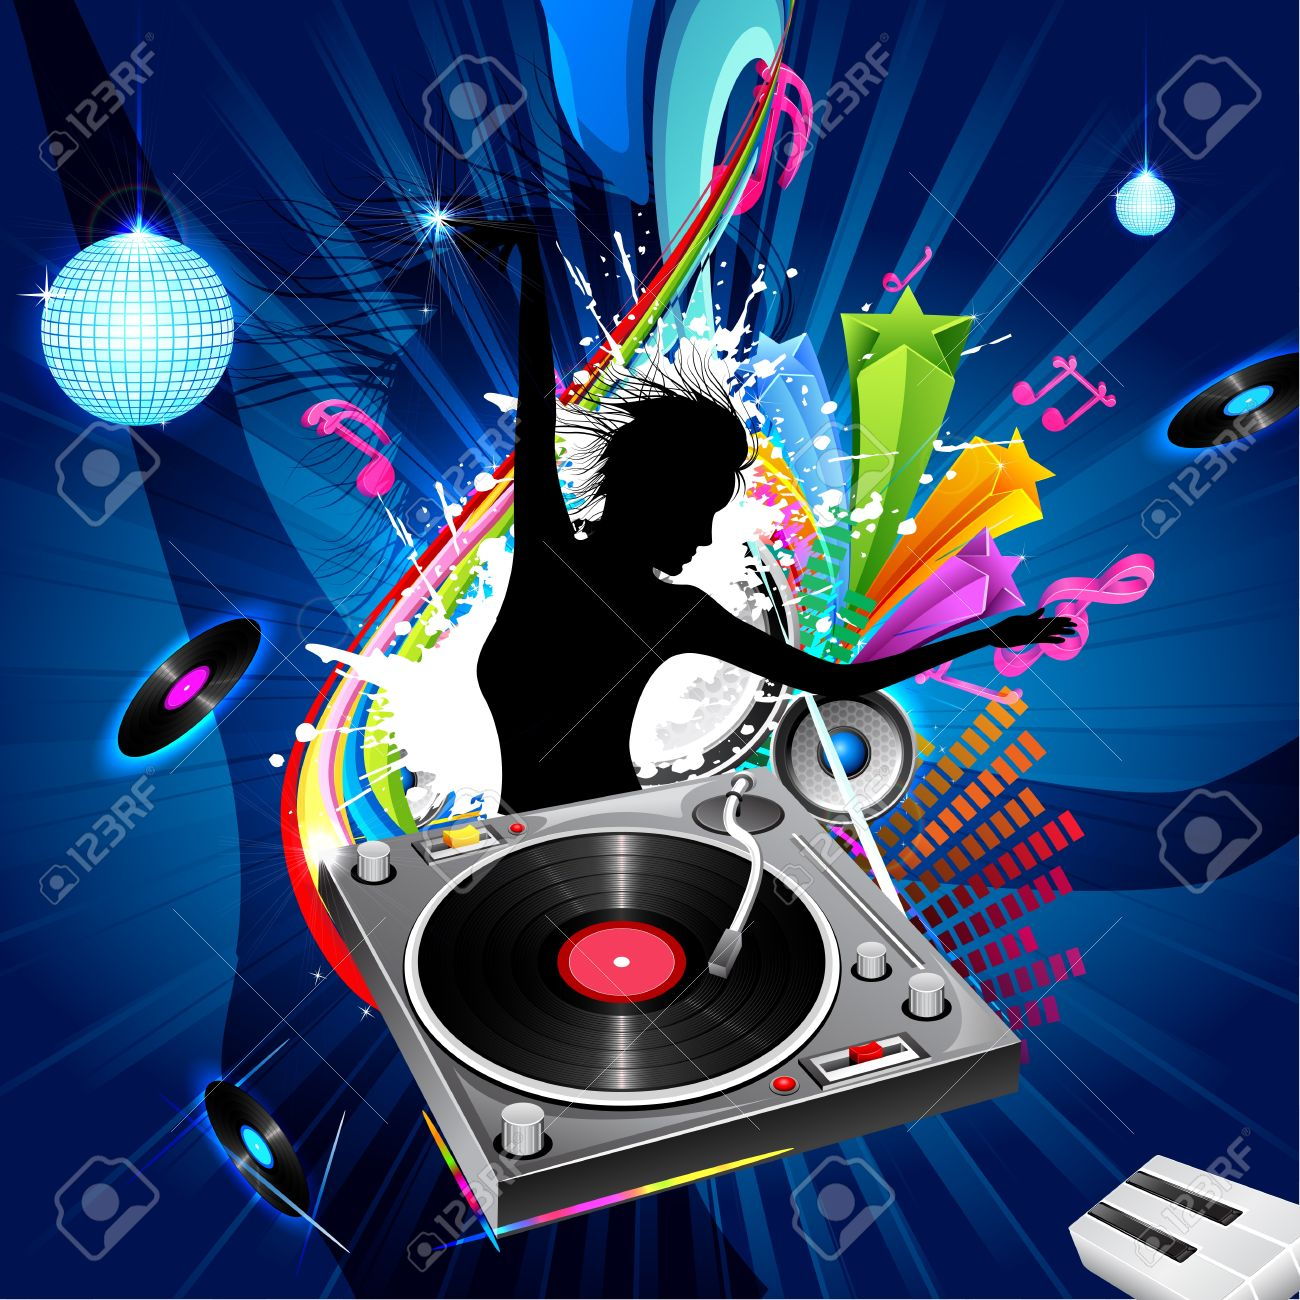 1,006 Female Dj Stock Illustrations, Cliparts And Royalty Free ...